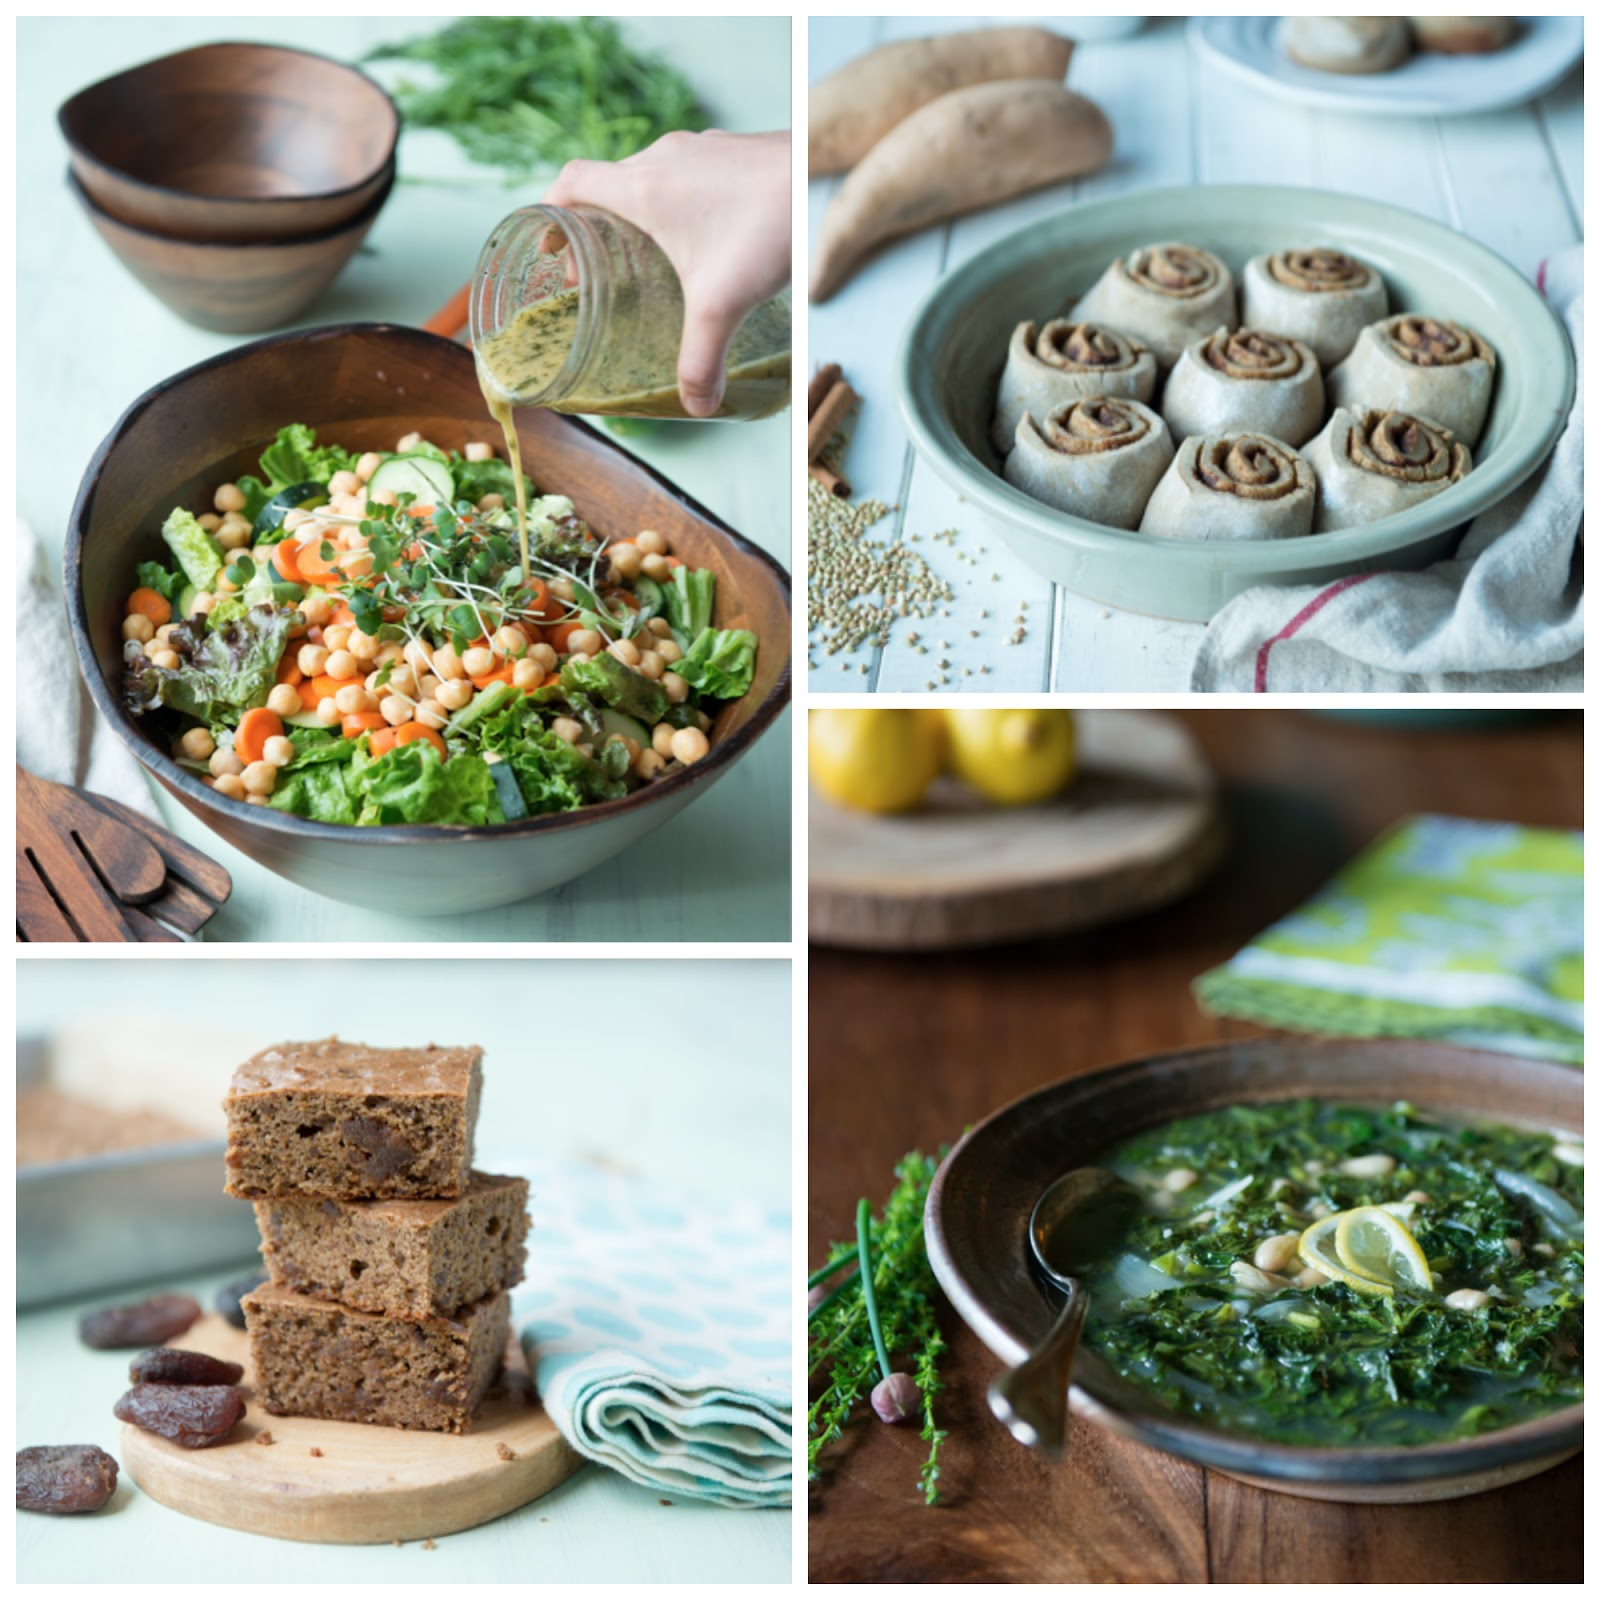 Nourishing meals nourishing meals book i have five children all of whom weve raised from pre conception onwards using the principles and types of recipes found in nourishing meals forumfinder Choice Image